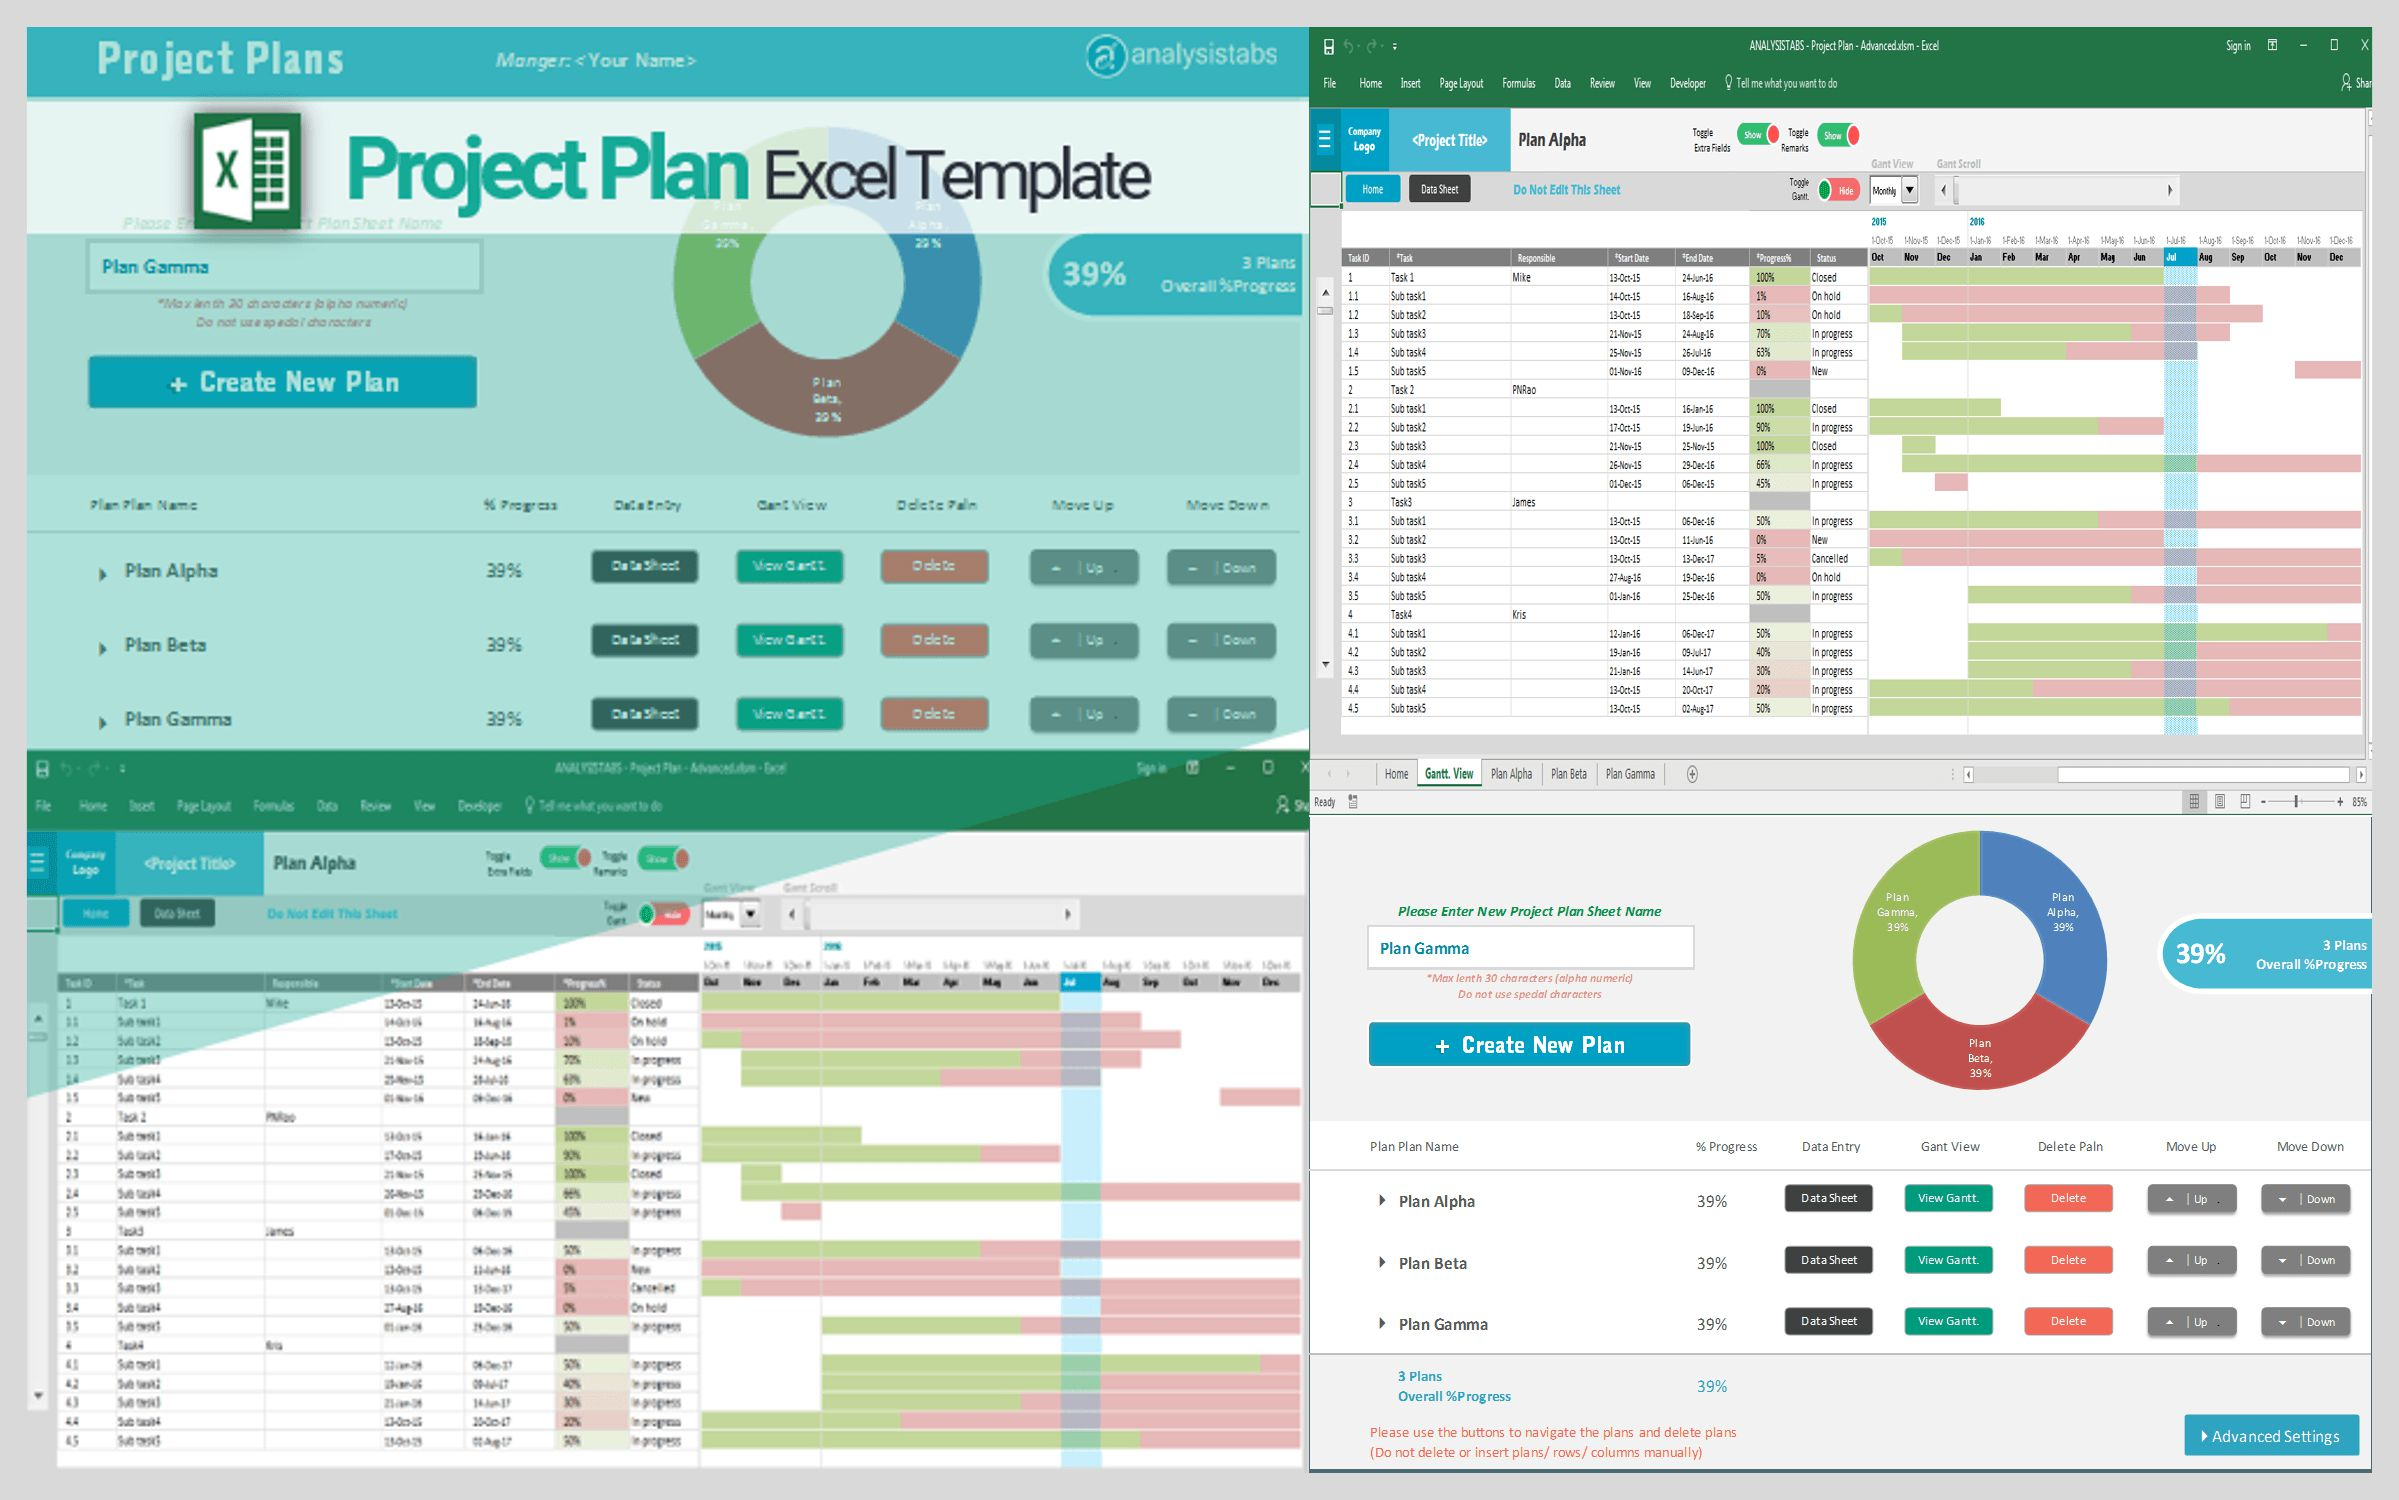 005 Stupendou Project Plan Template Excel Free Image  Action Download Xl XlsxFull